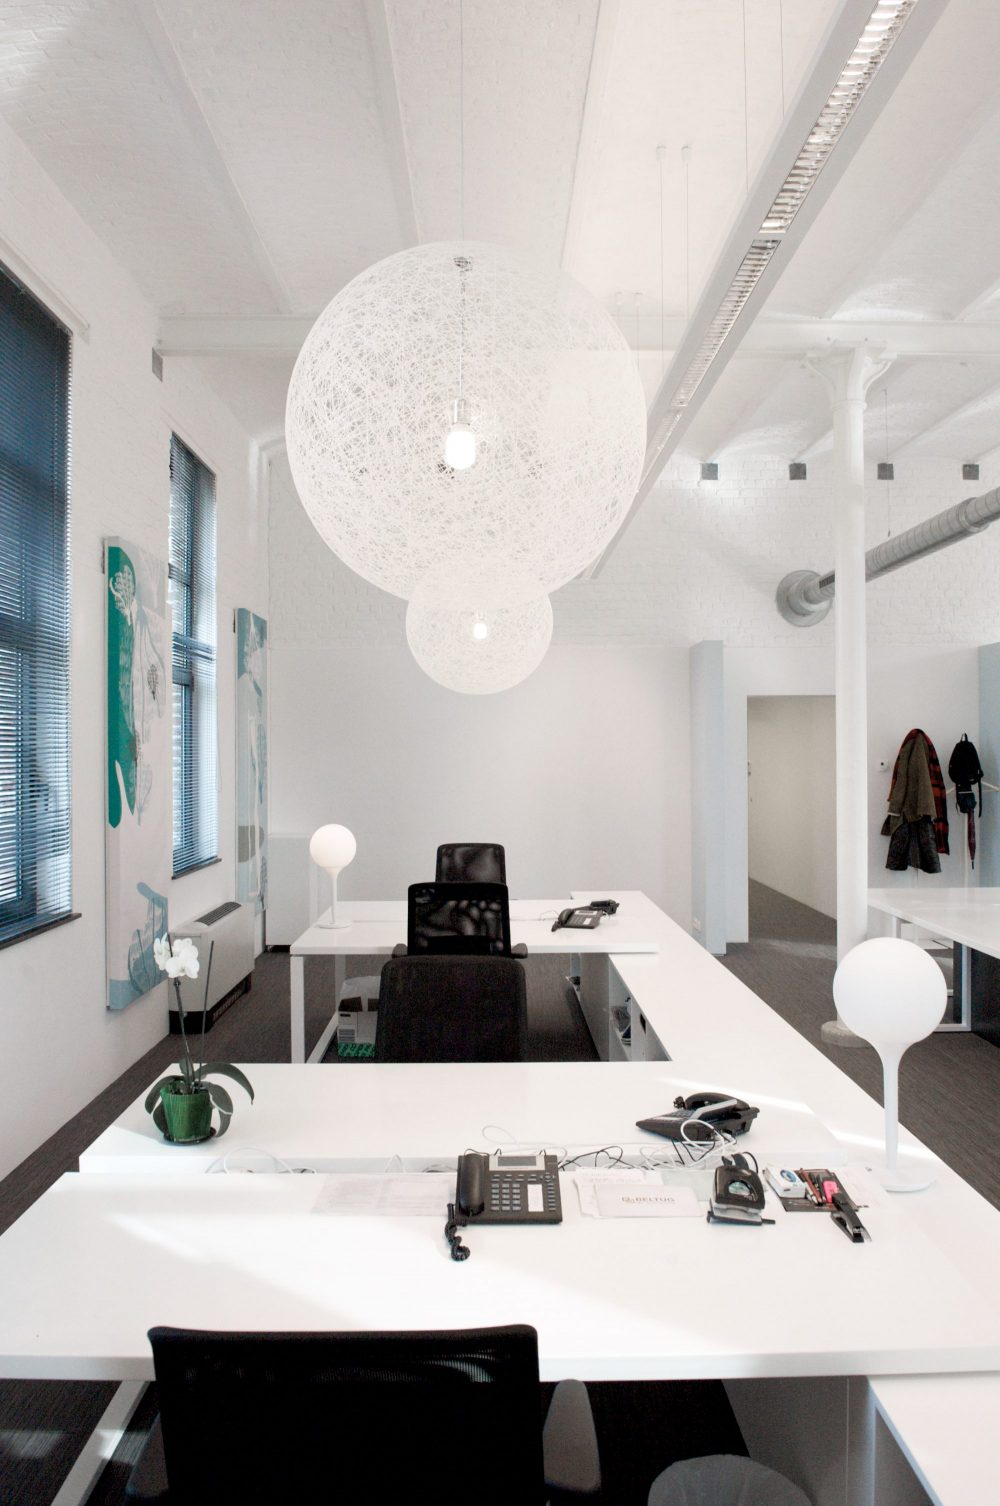 tables blanches, chaises bureaux noirs, lampes boules blanches